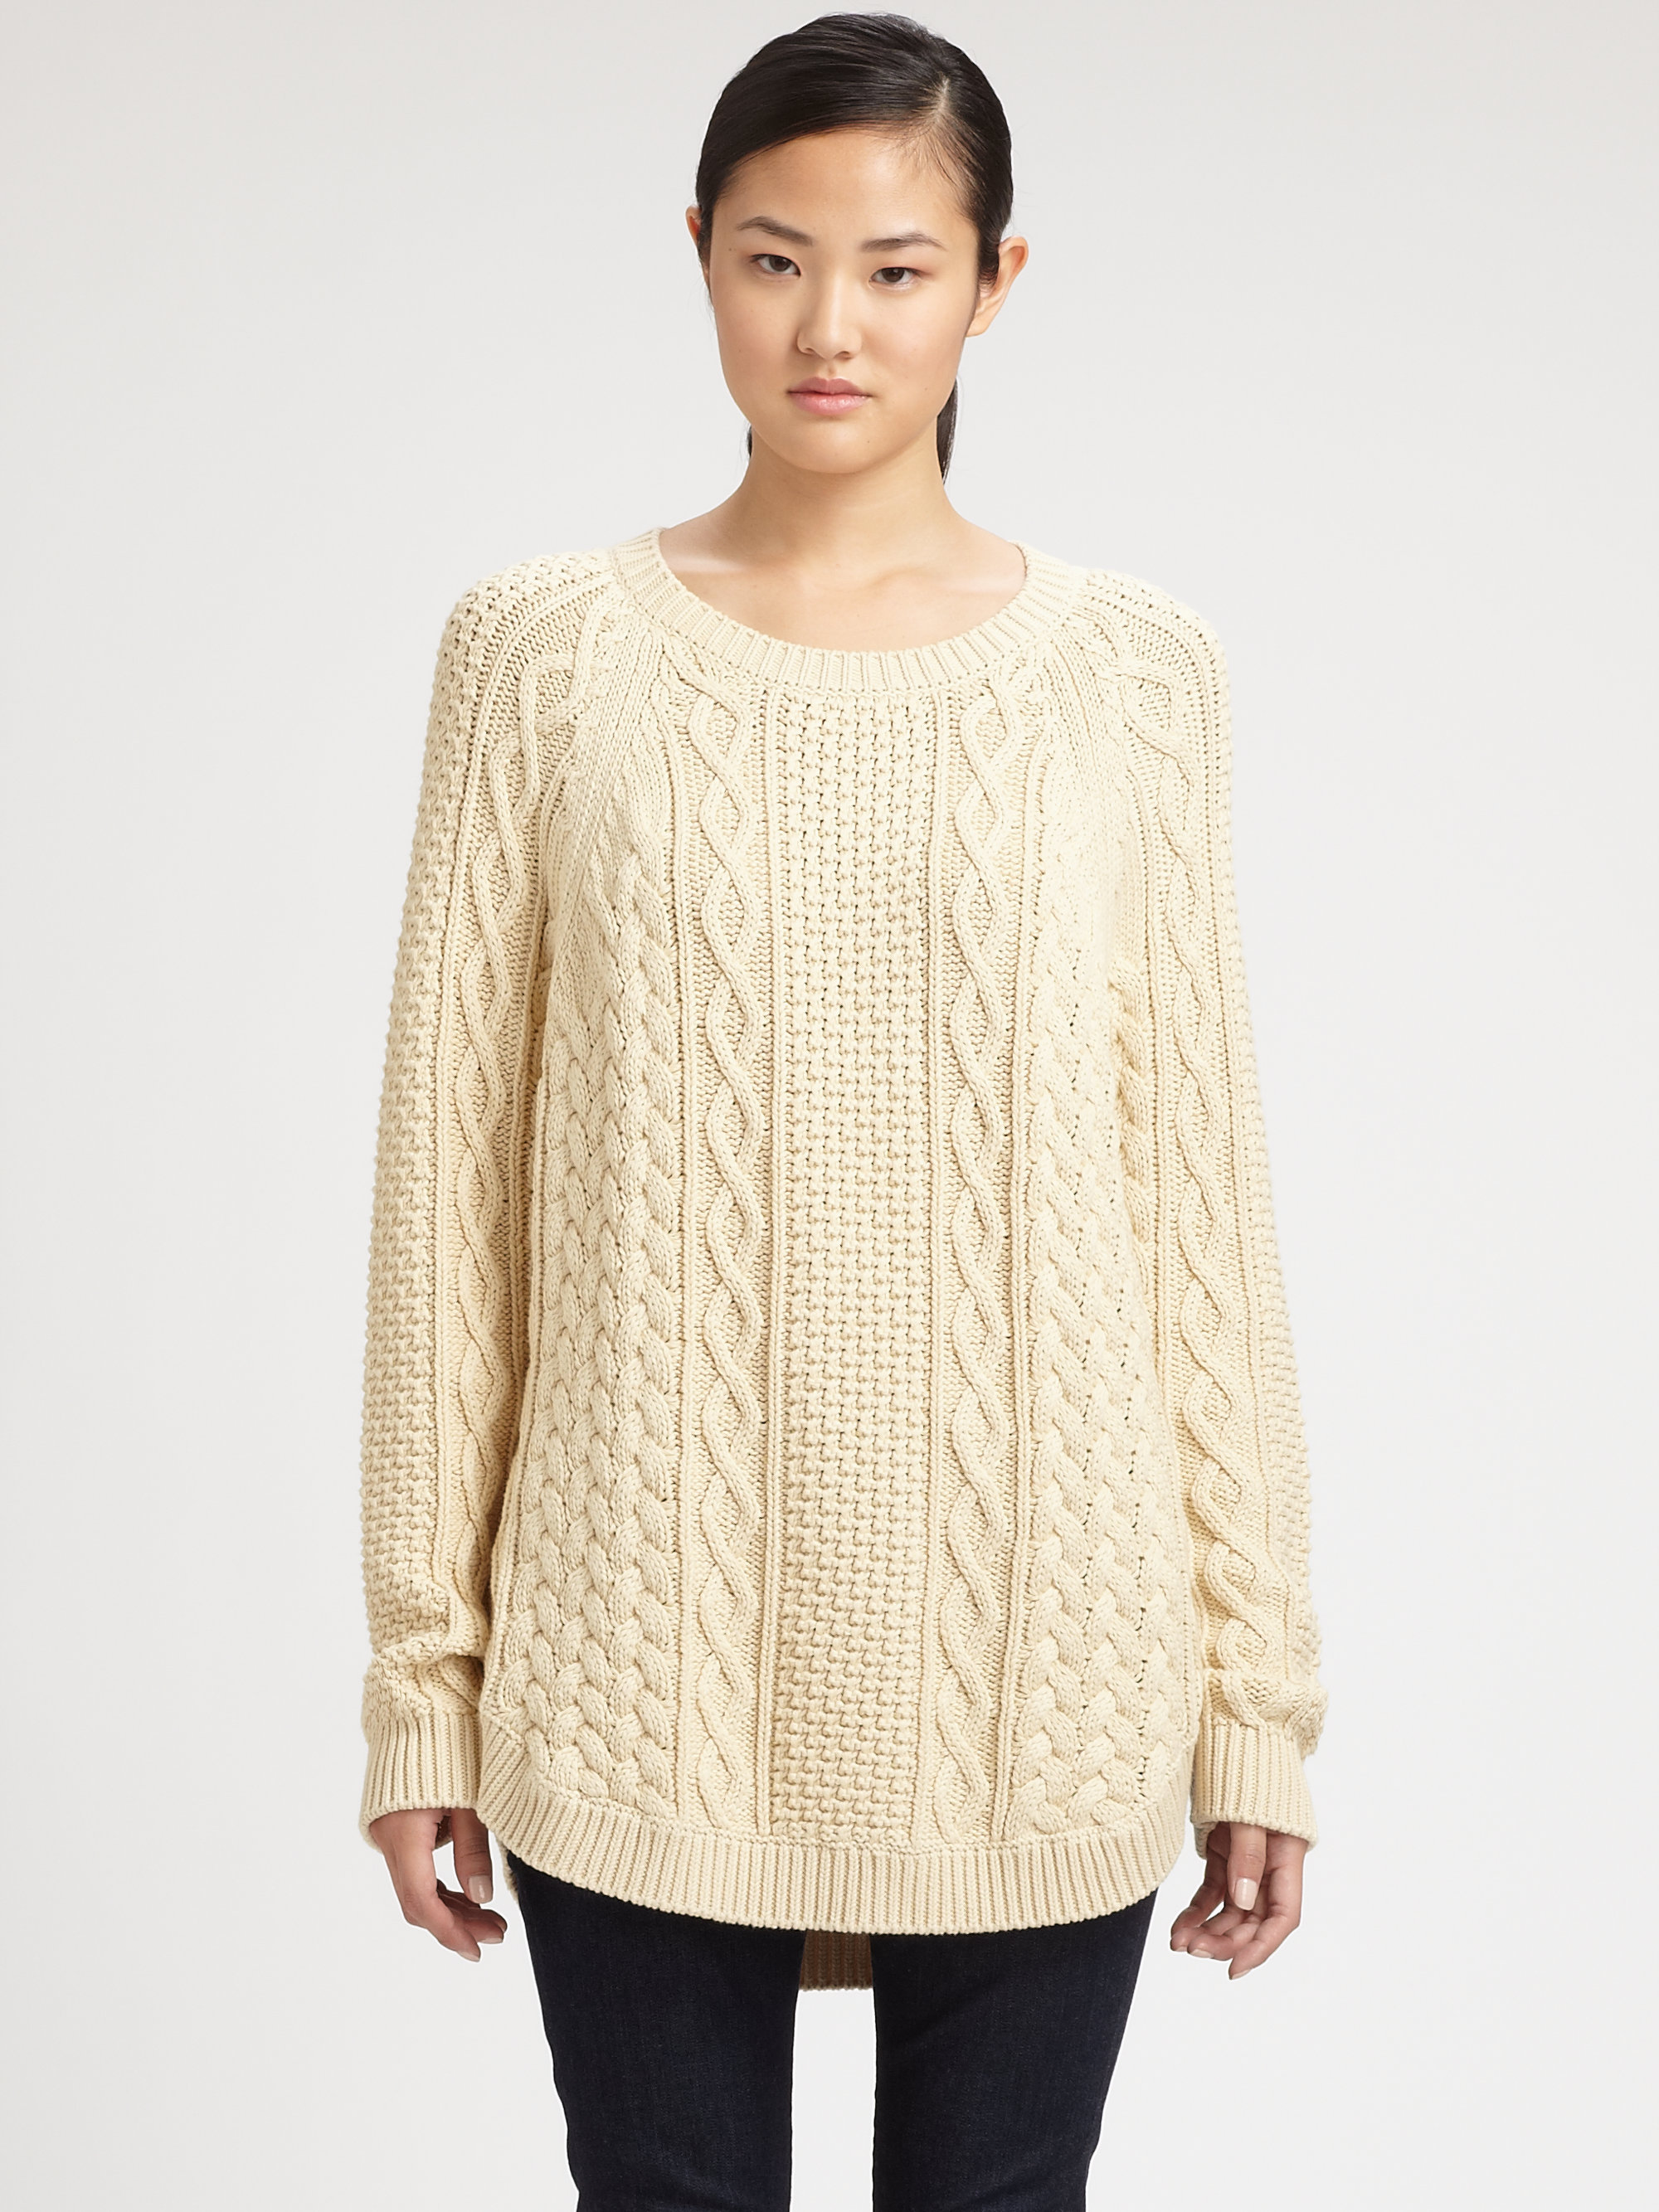 3bb71691a6c527 MICHAEL Michael Kors Fisherman Cableknit Sweater in Natural - Lyst